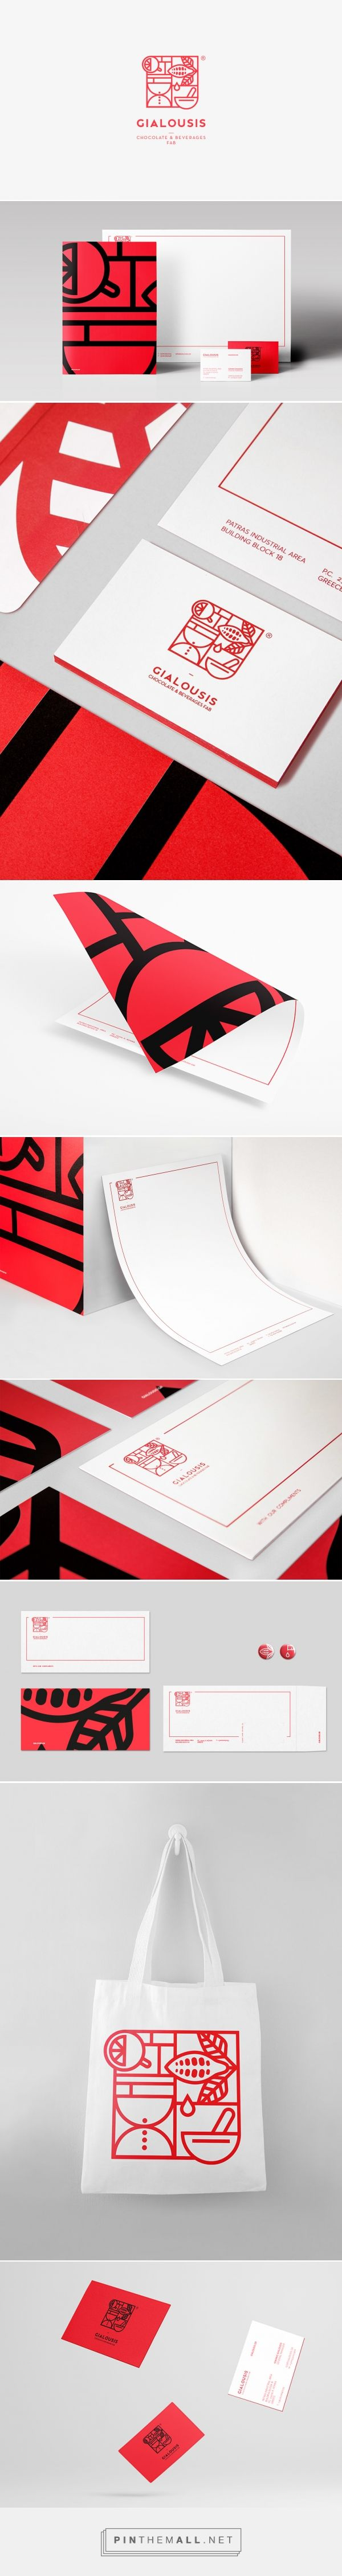 Gialousis Branding | | Luminous Design Group... - a grouped images picture - Pin Them All